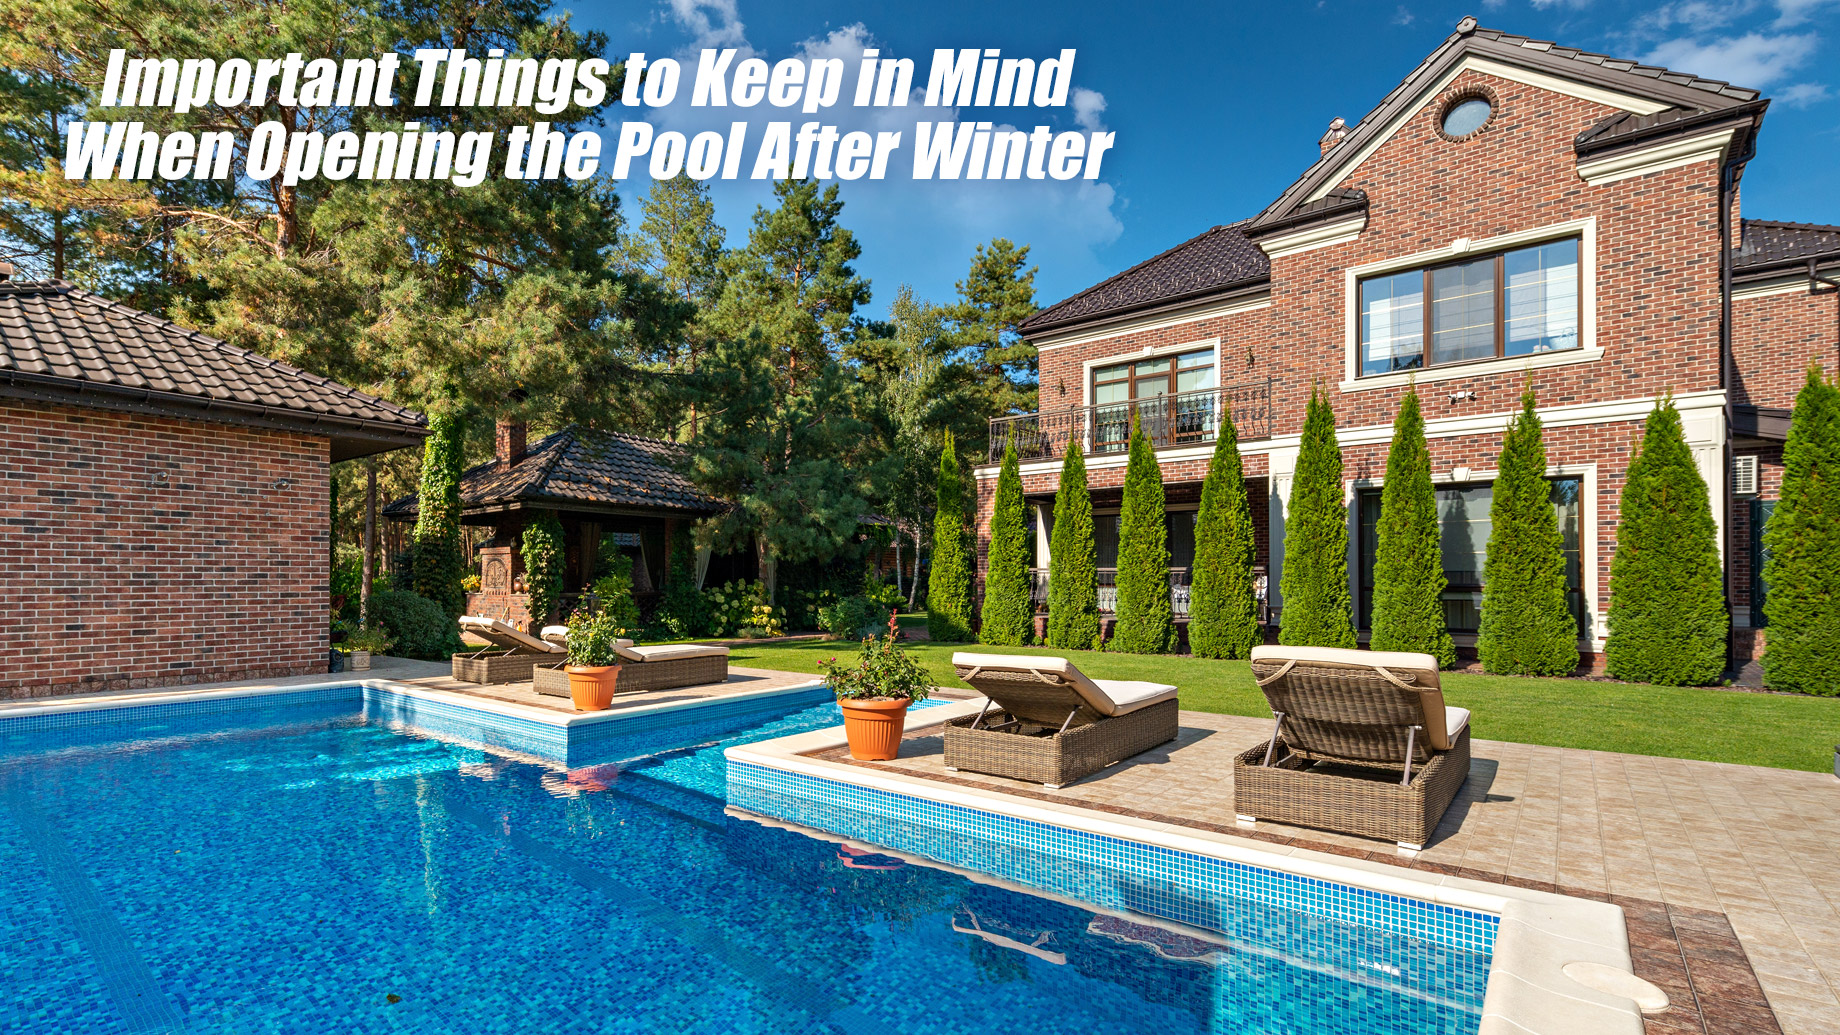 Important Things to Keep in Mind When Opening the Pool After Winter